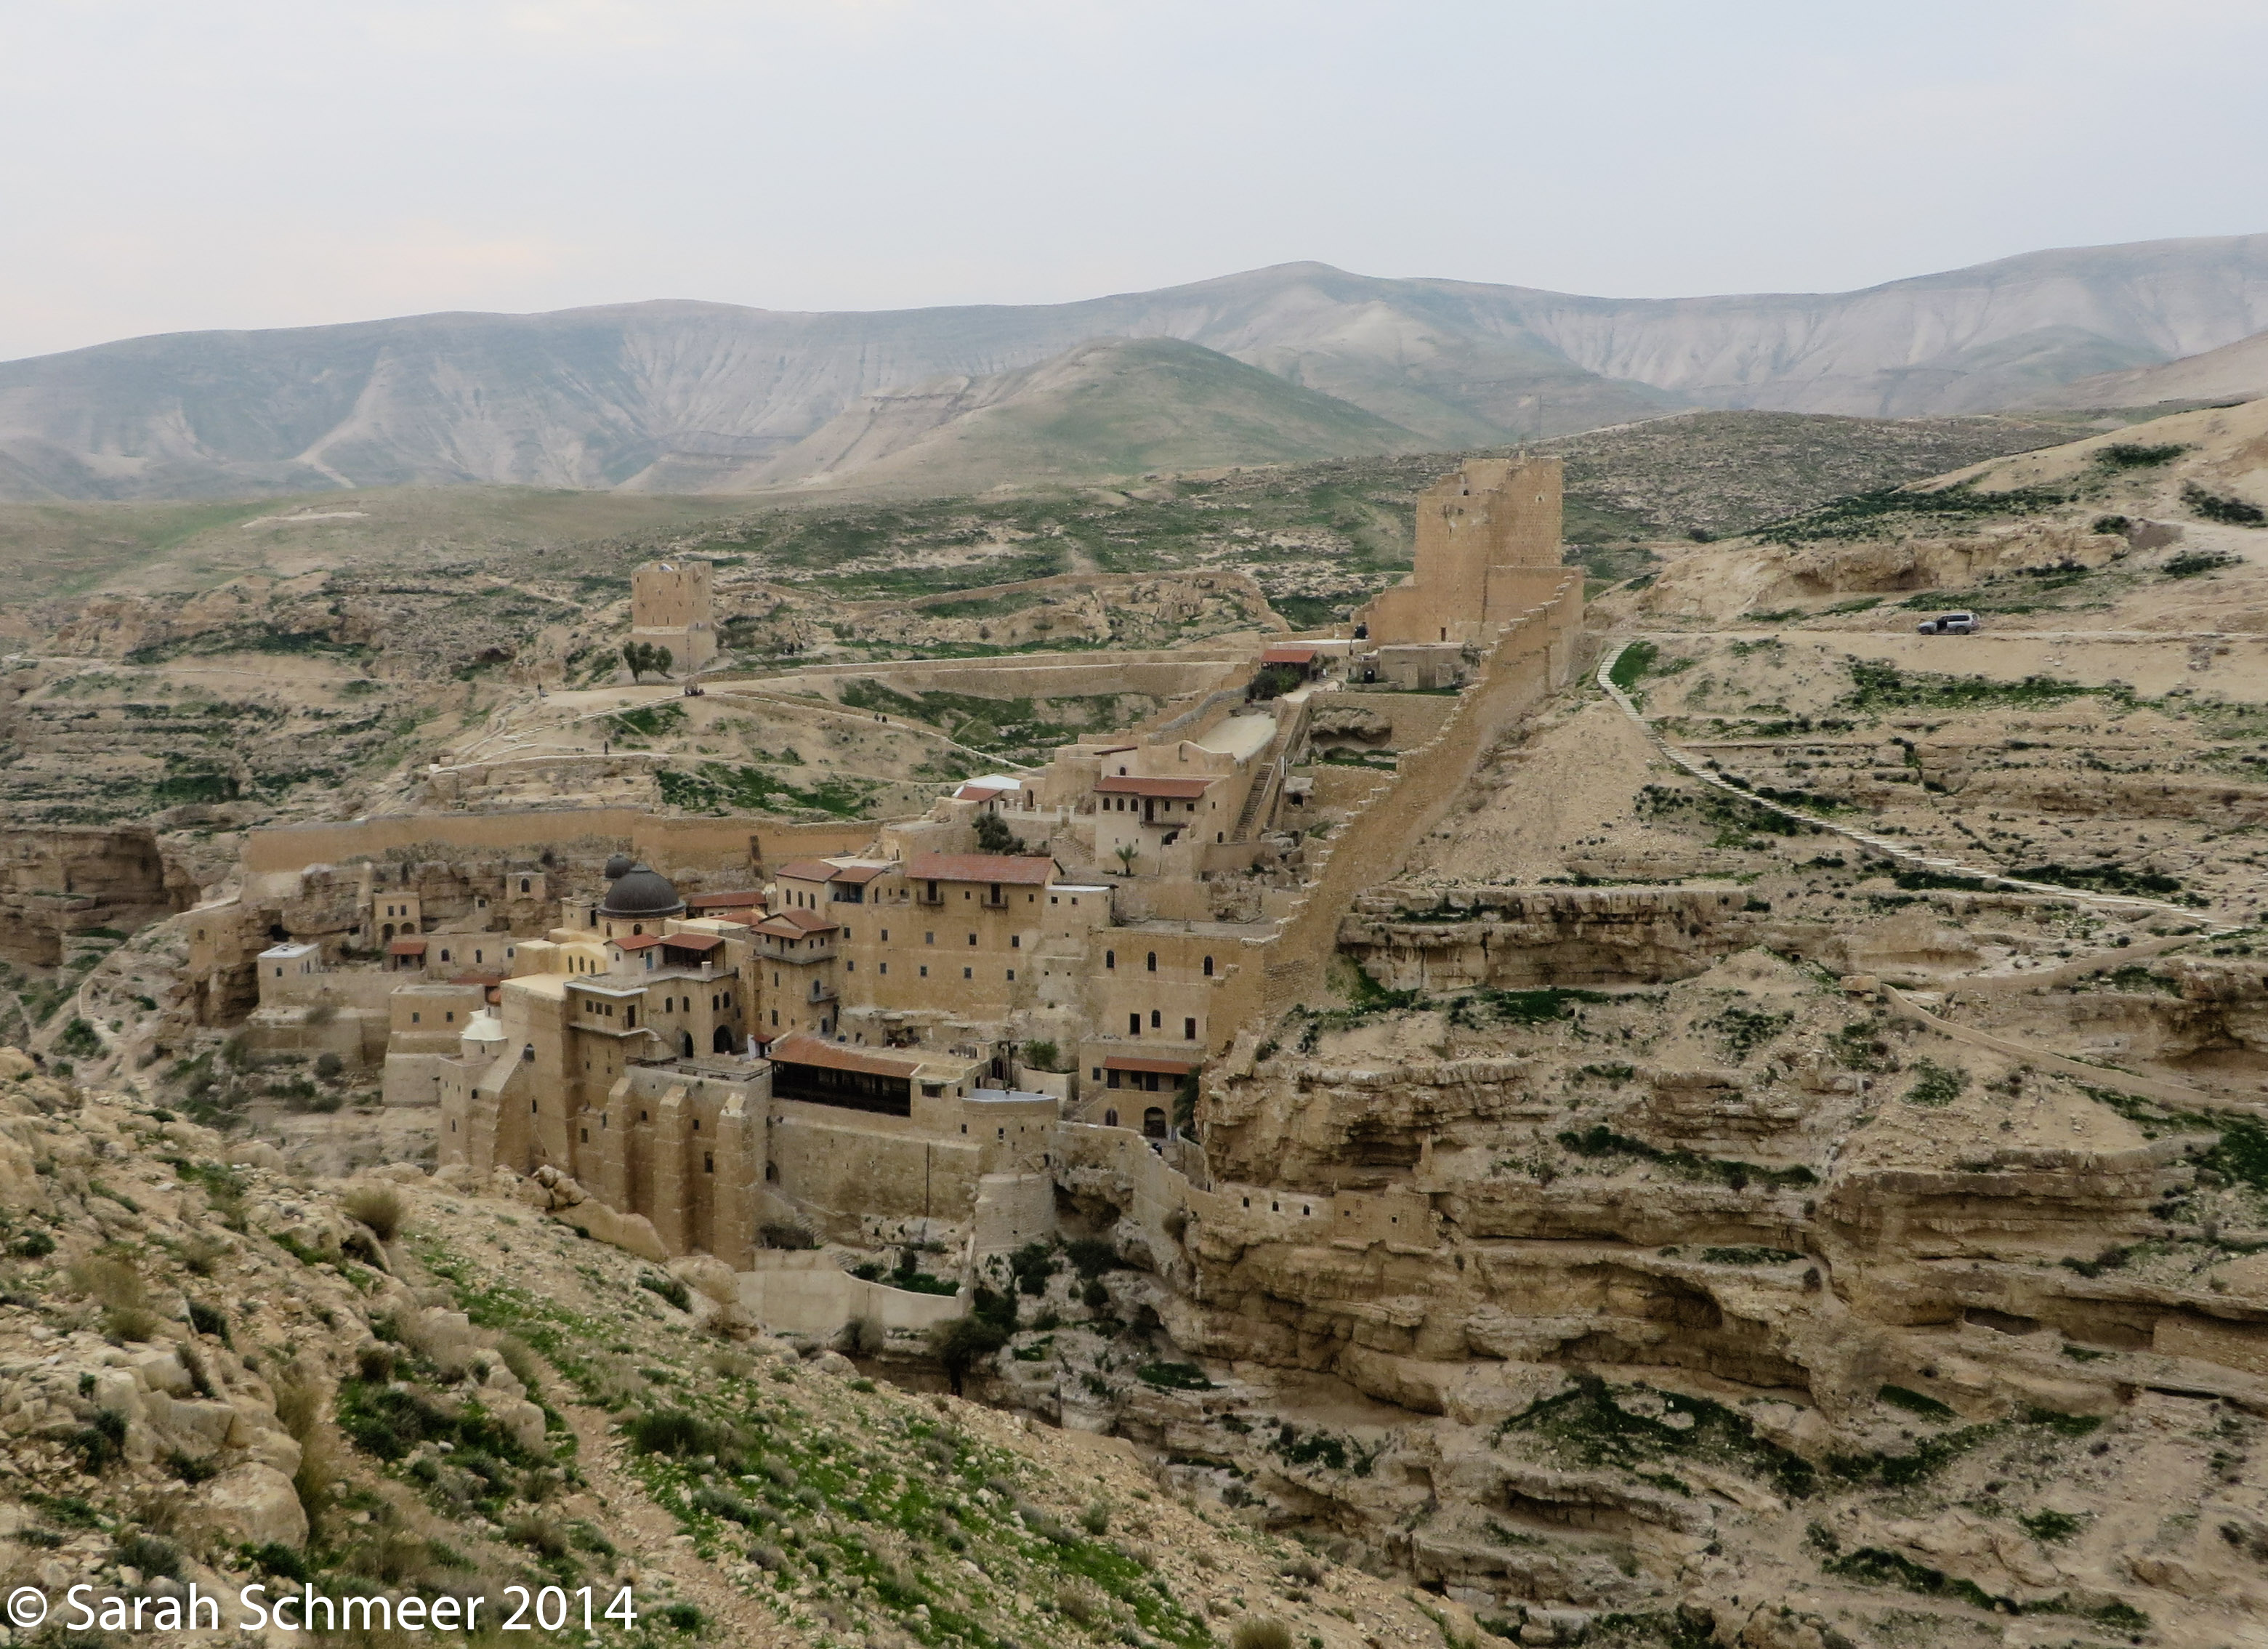 The Mar Saba Monastery in Palestine, as seen from Israel